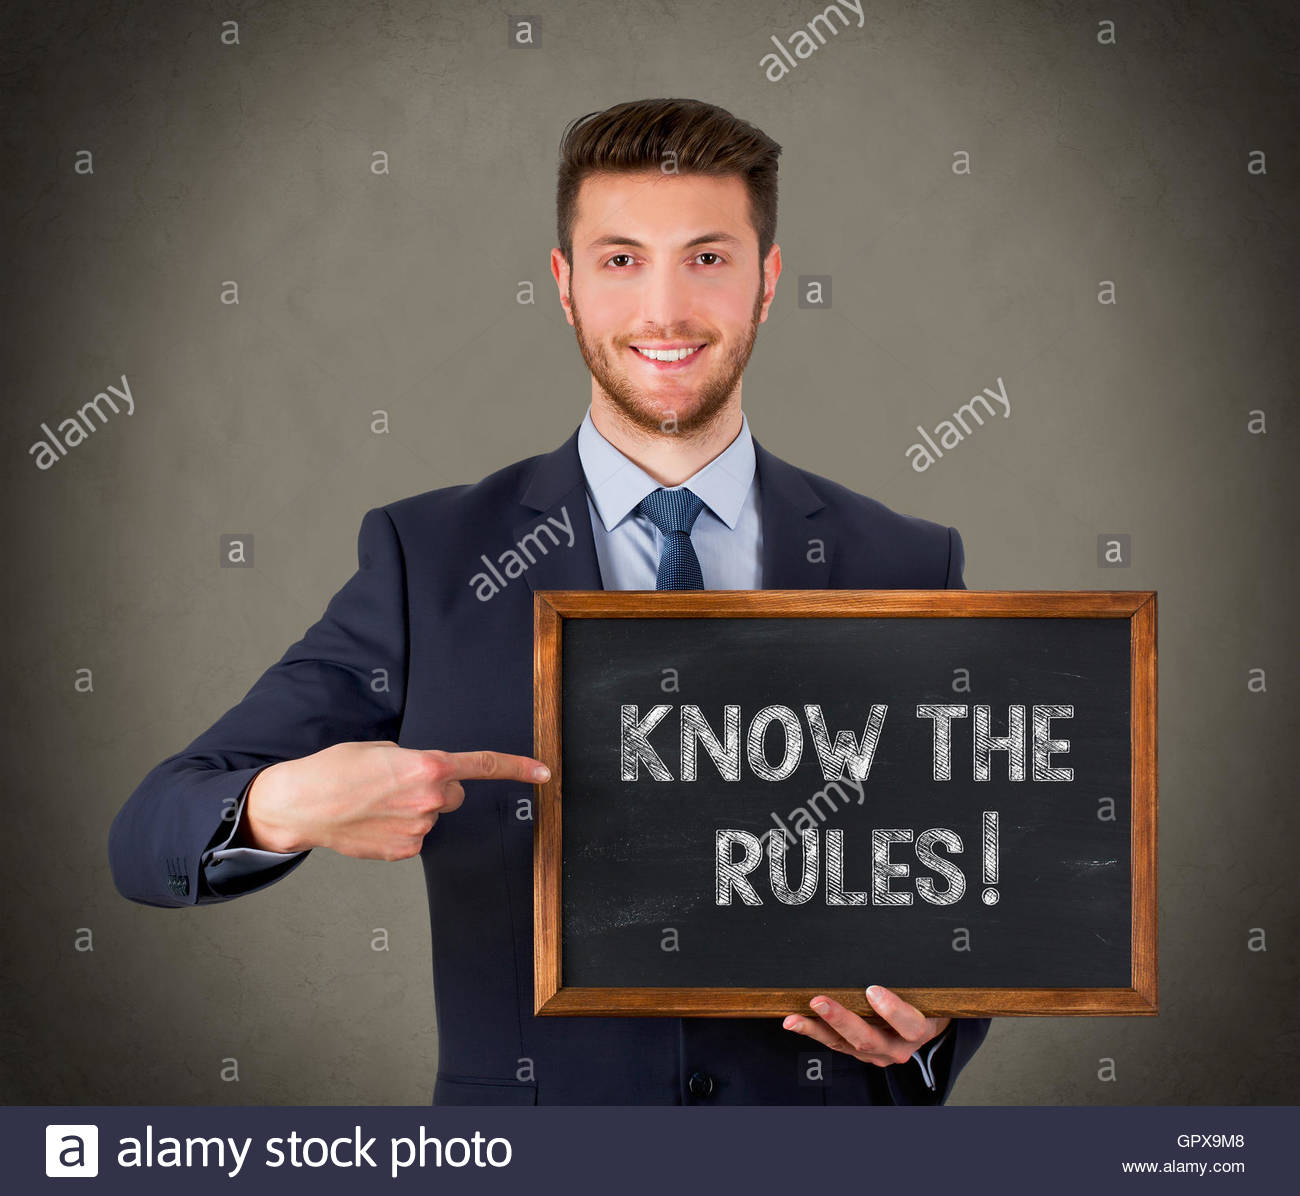 Know The Rules on Blackboard - Stock Image